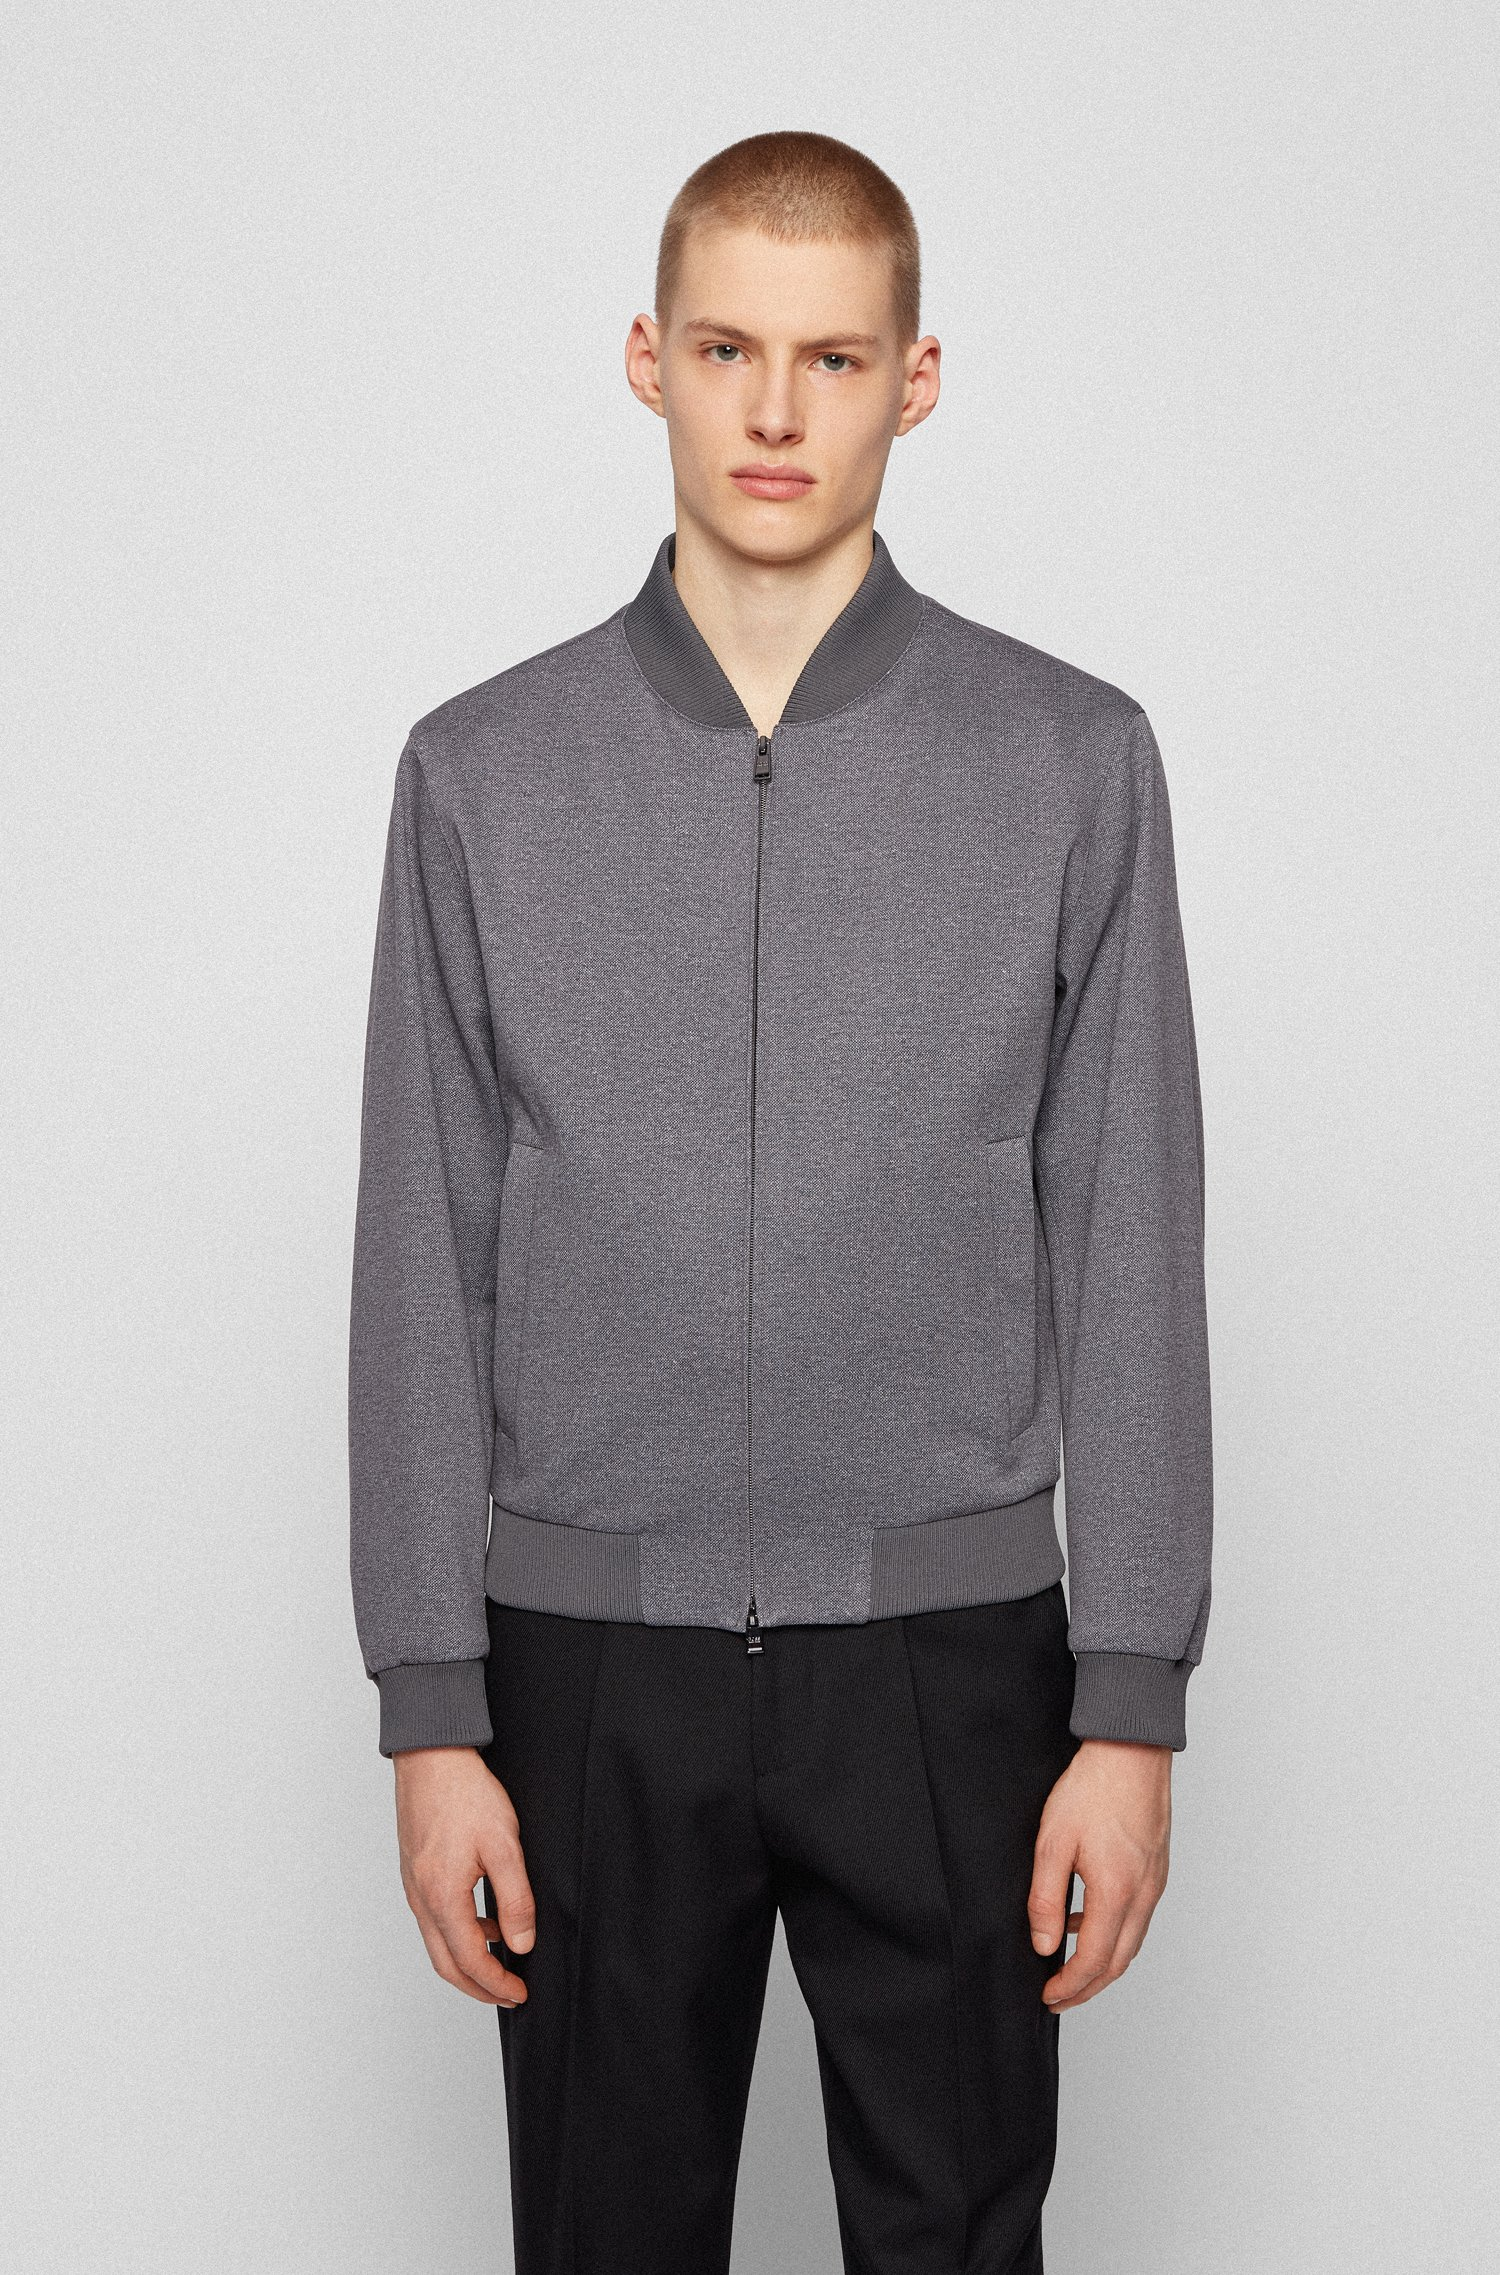 Blouson-style slim-fit jacket in micro-patterned fabric, Grey